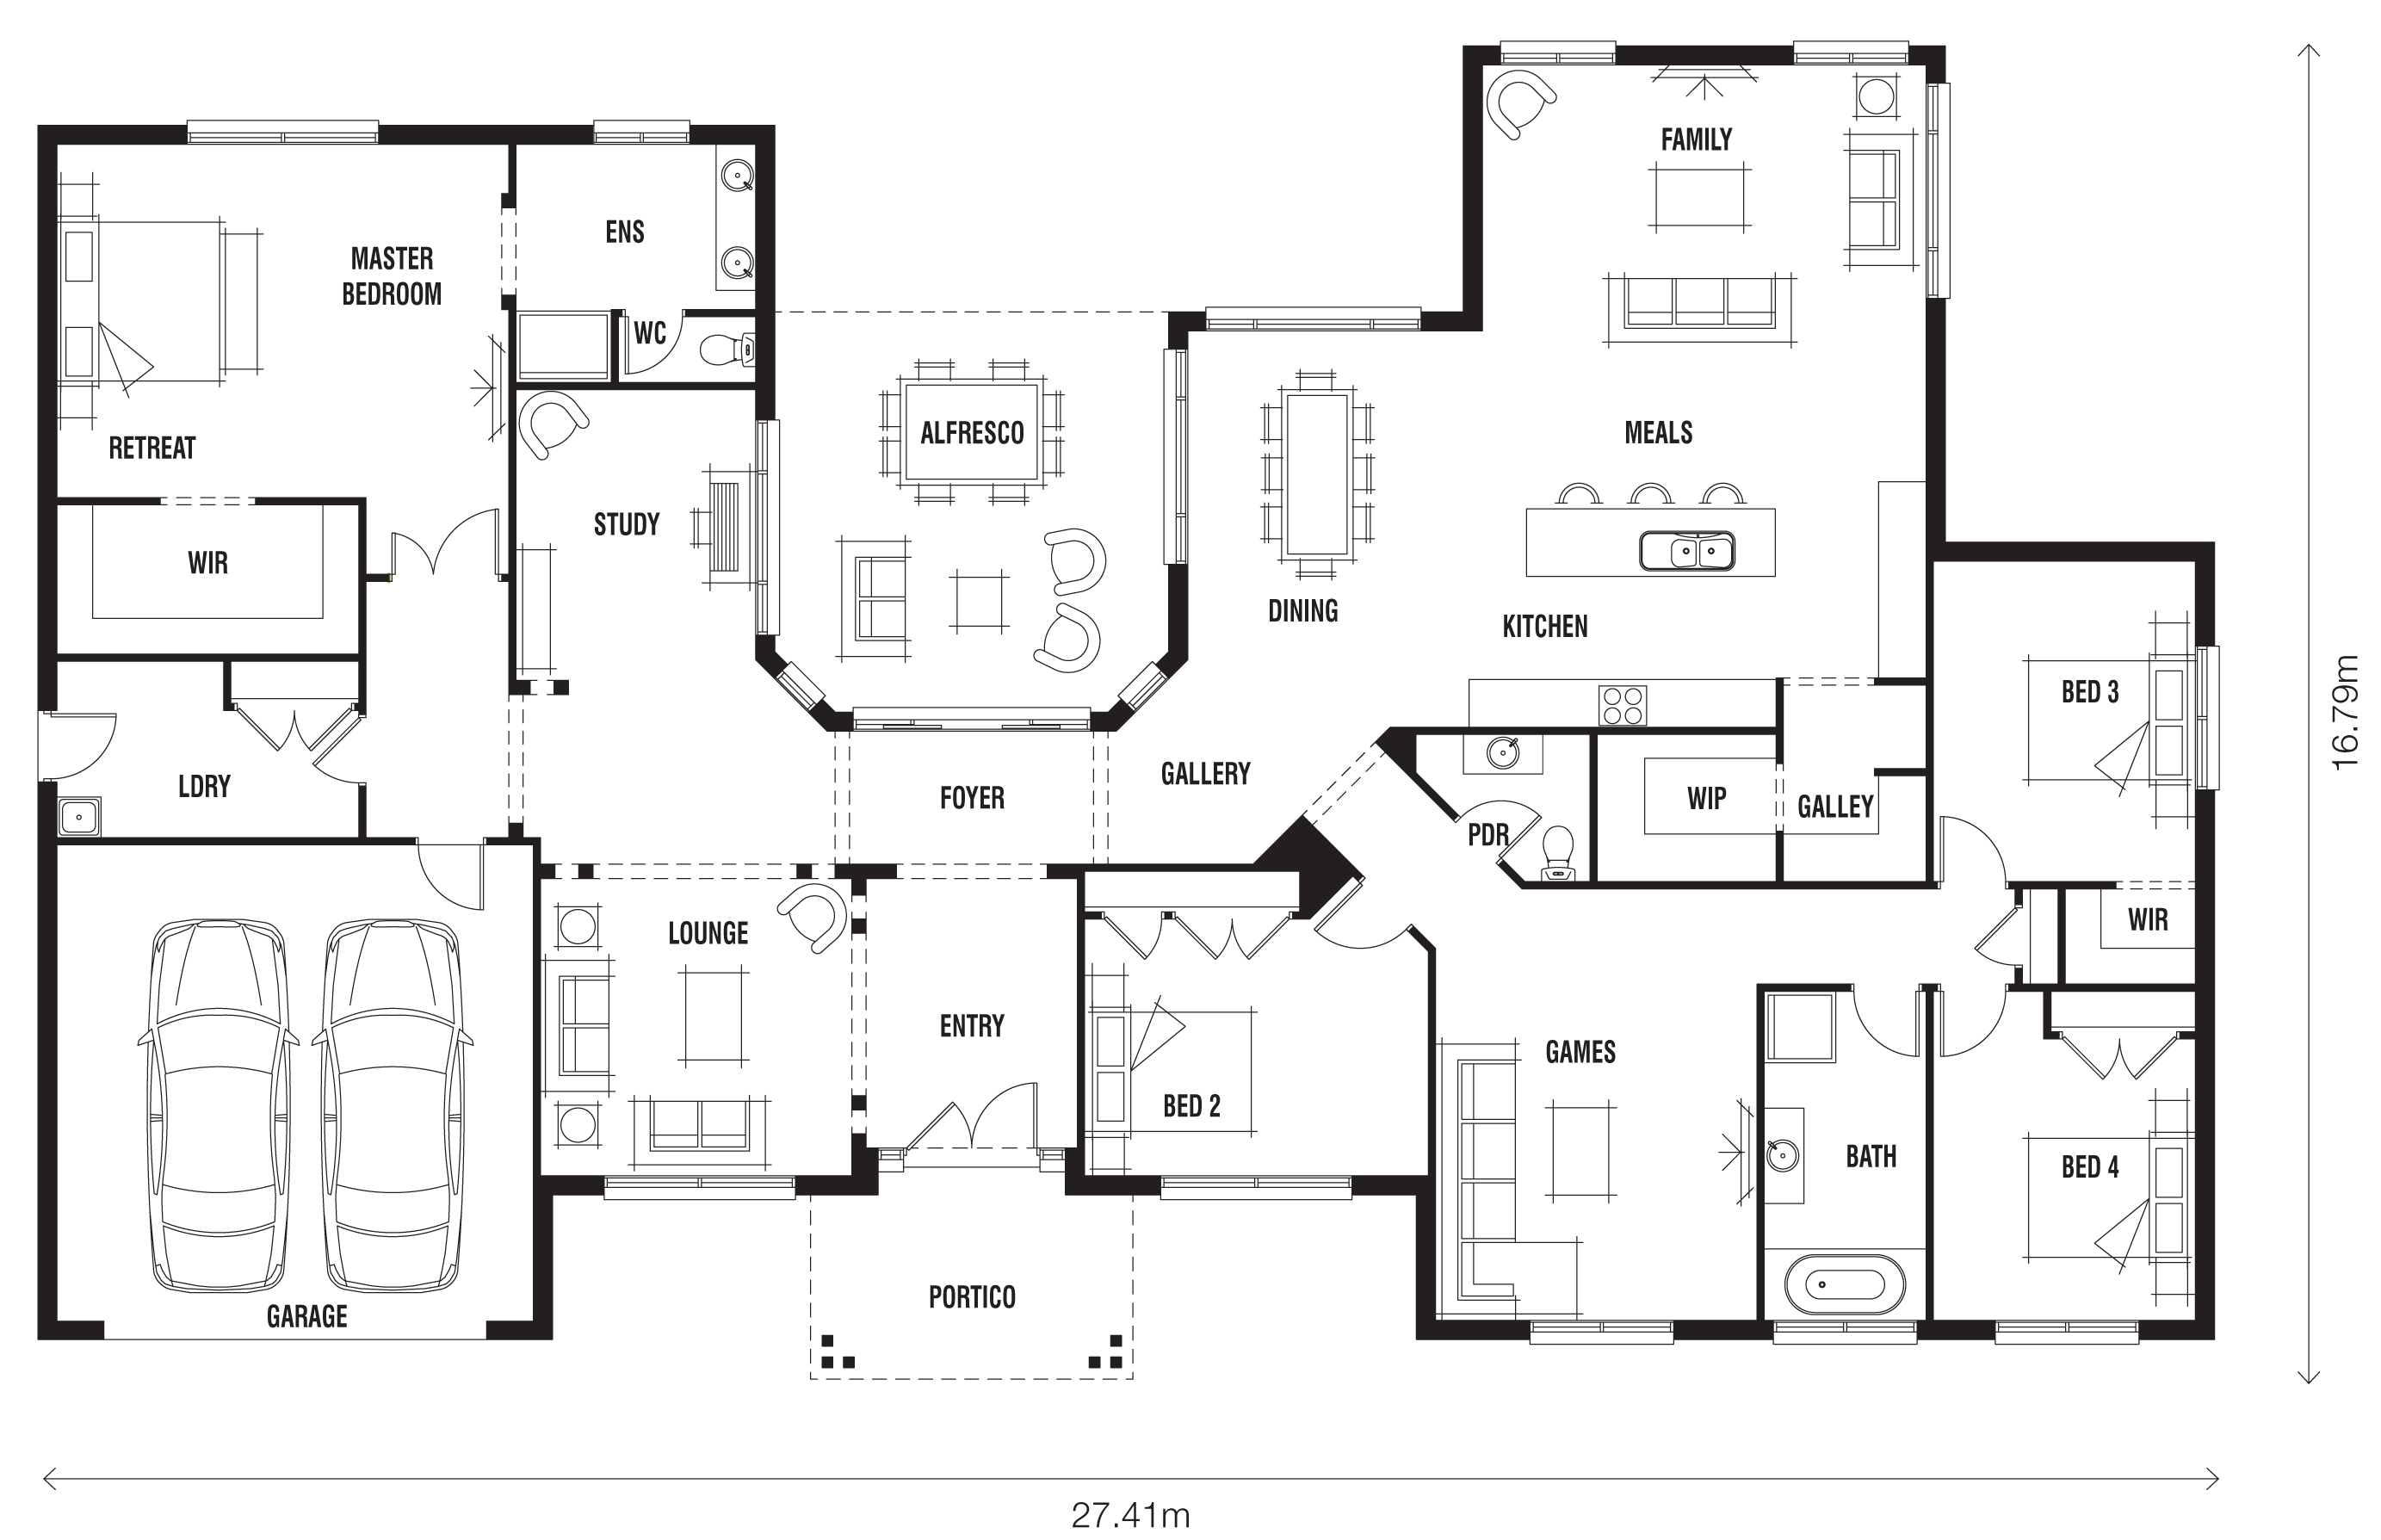 house plans with large bedrooms australia home design best 25 ranch style homes ideas on pinterest